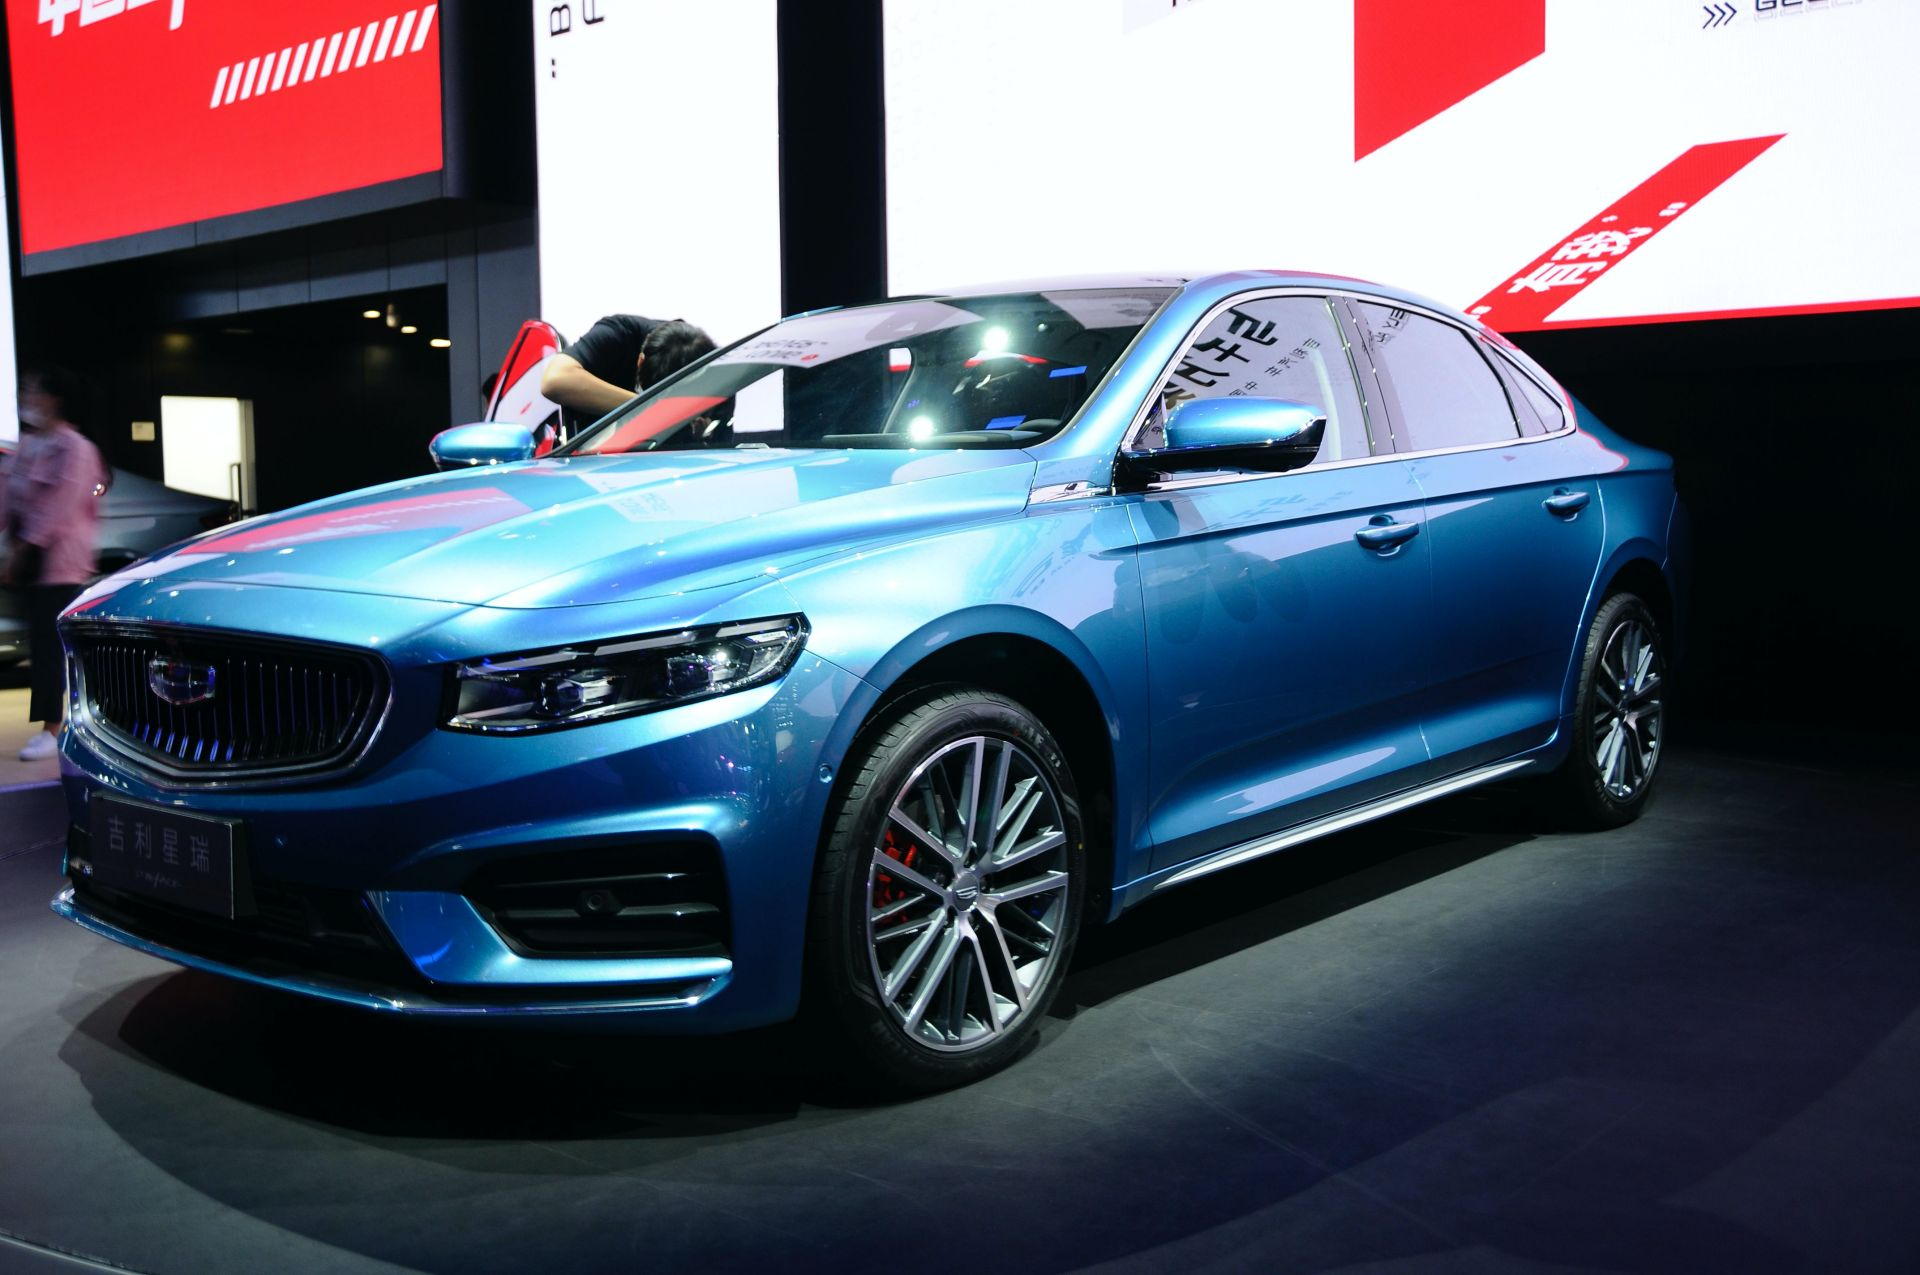 2021-Geely-Preface-aka-Xing-Rui-at-the-2020-Beijing-Auto-Show-3.jpg